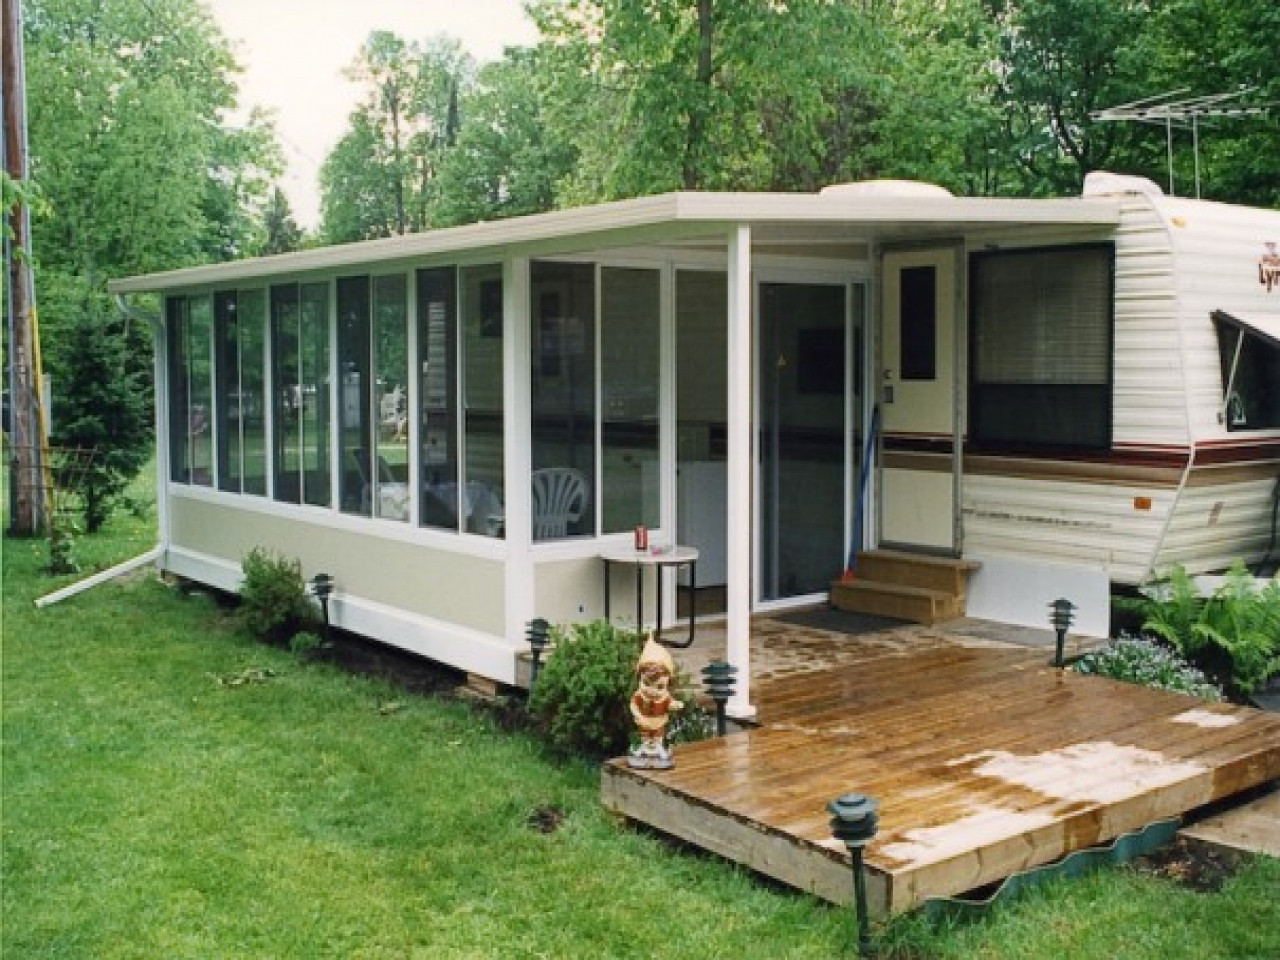 Best ideas about DIY Sunrooms Kits . Save or Pin Luxury sunrooms diy sunroom kit price home depot sunrooms Now.